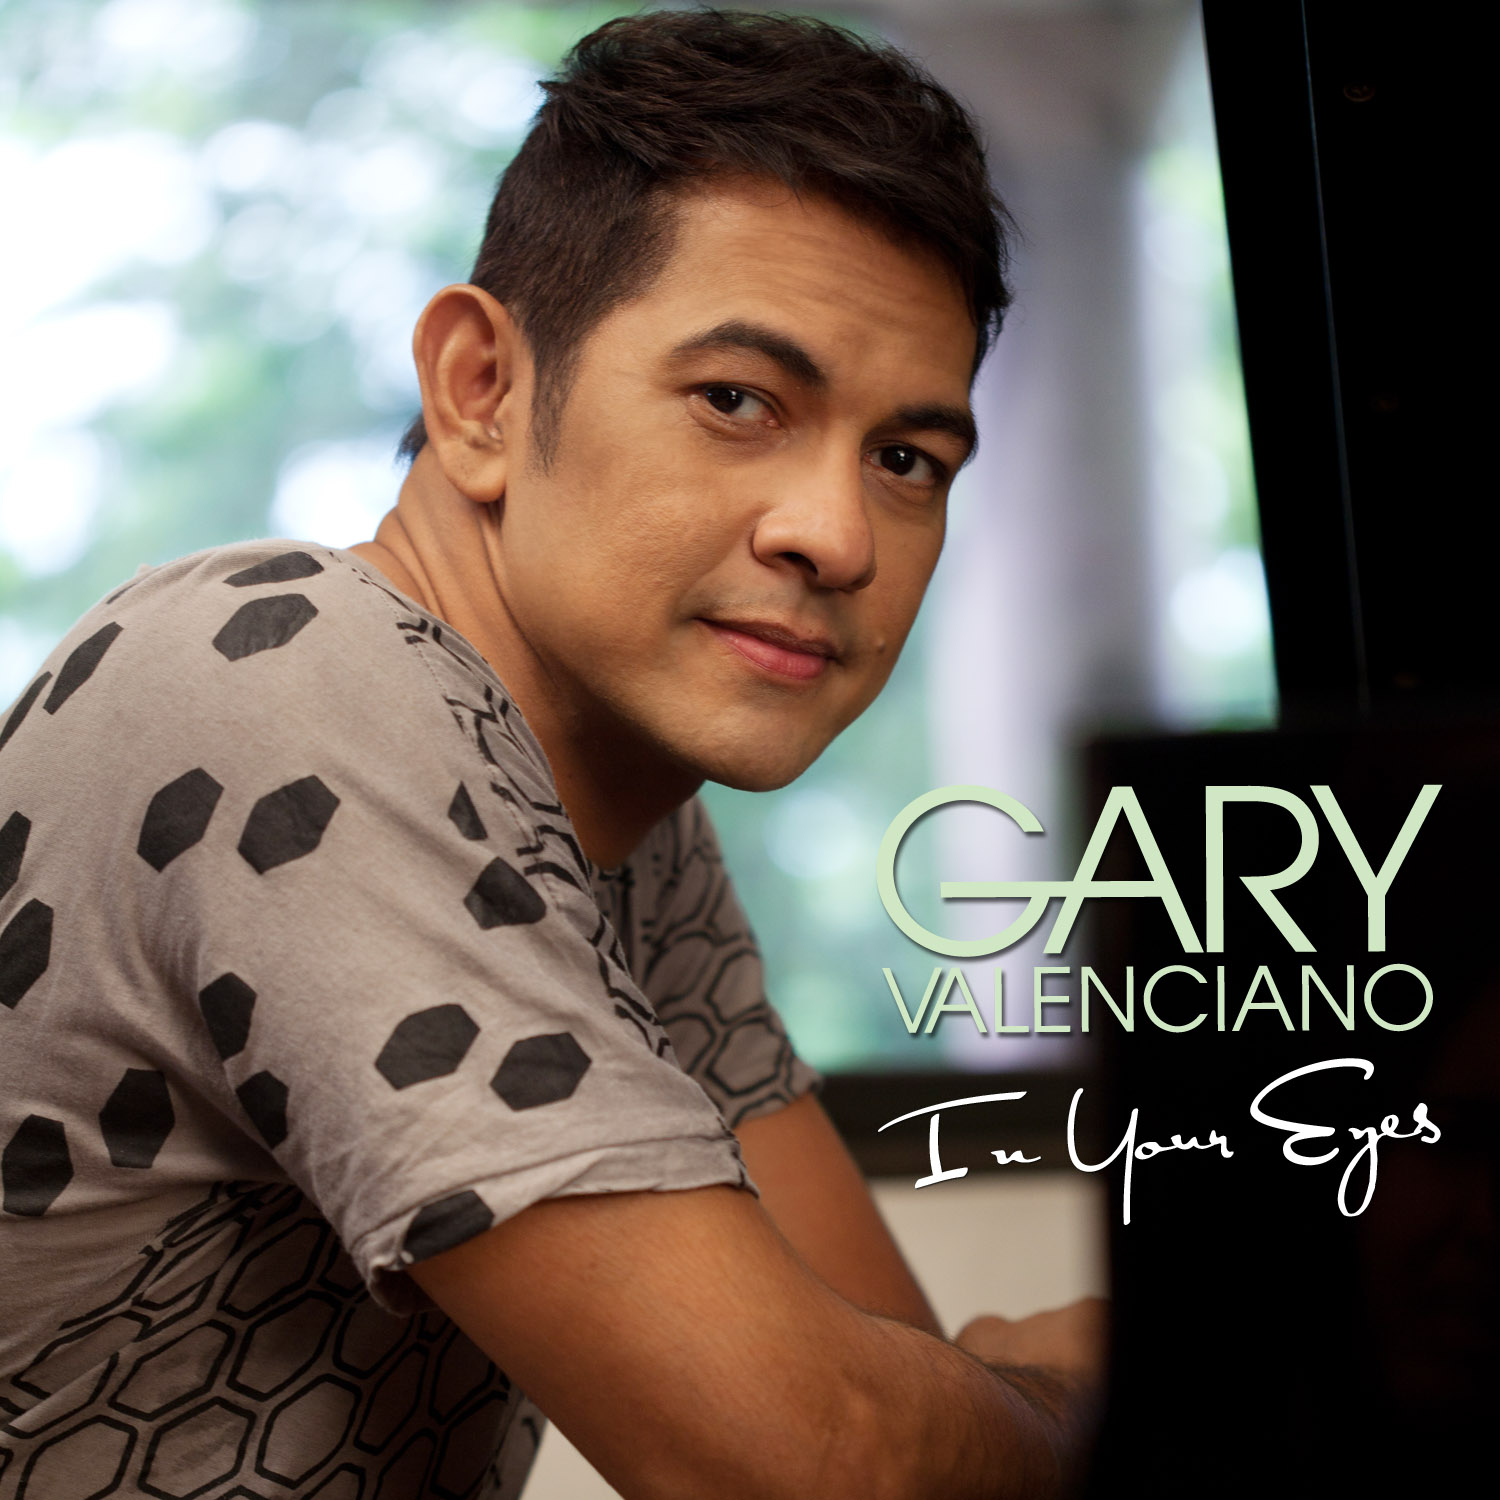 Gary Valenciano releases In Your Eyes | THE WEB MAGAZINE